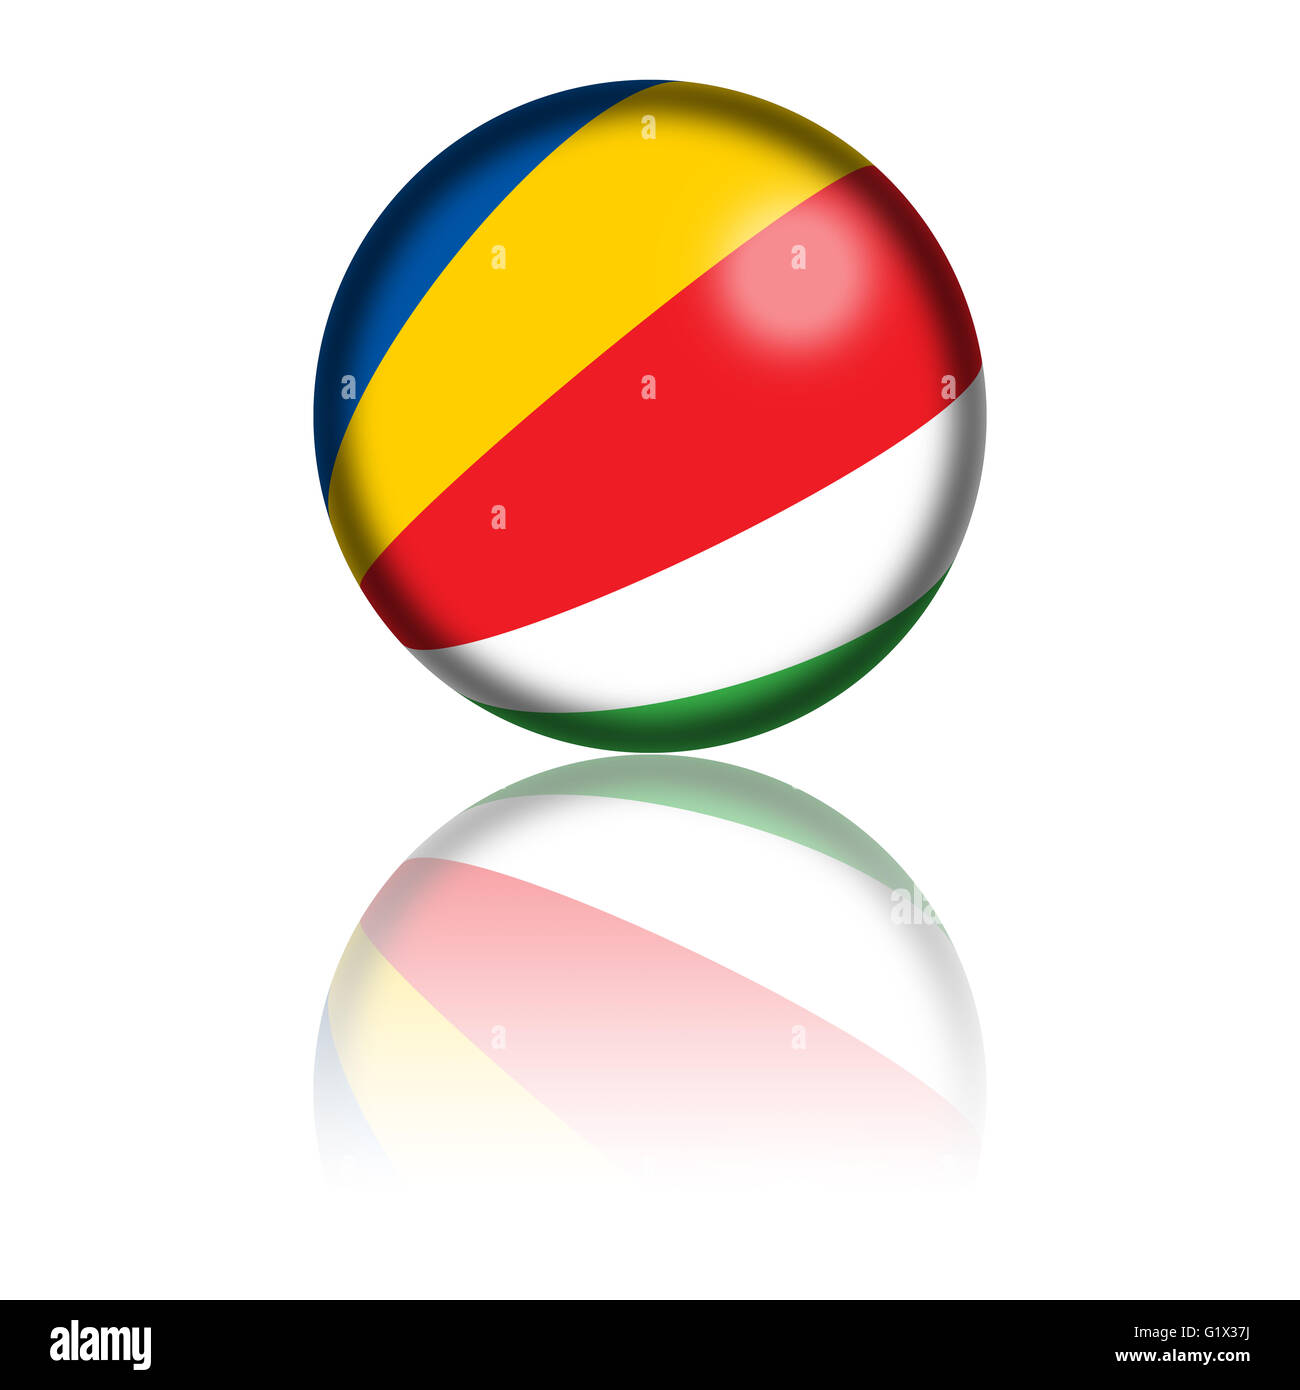 Sphere of Seychelles flag with reflection at bottom. - Stock Image